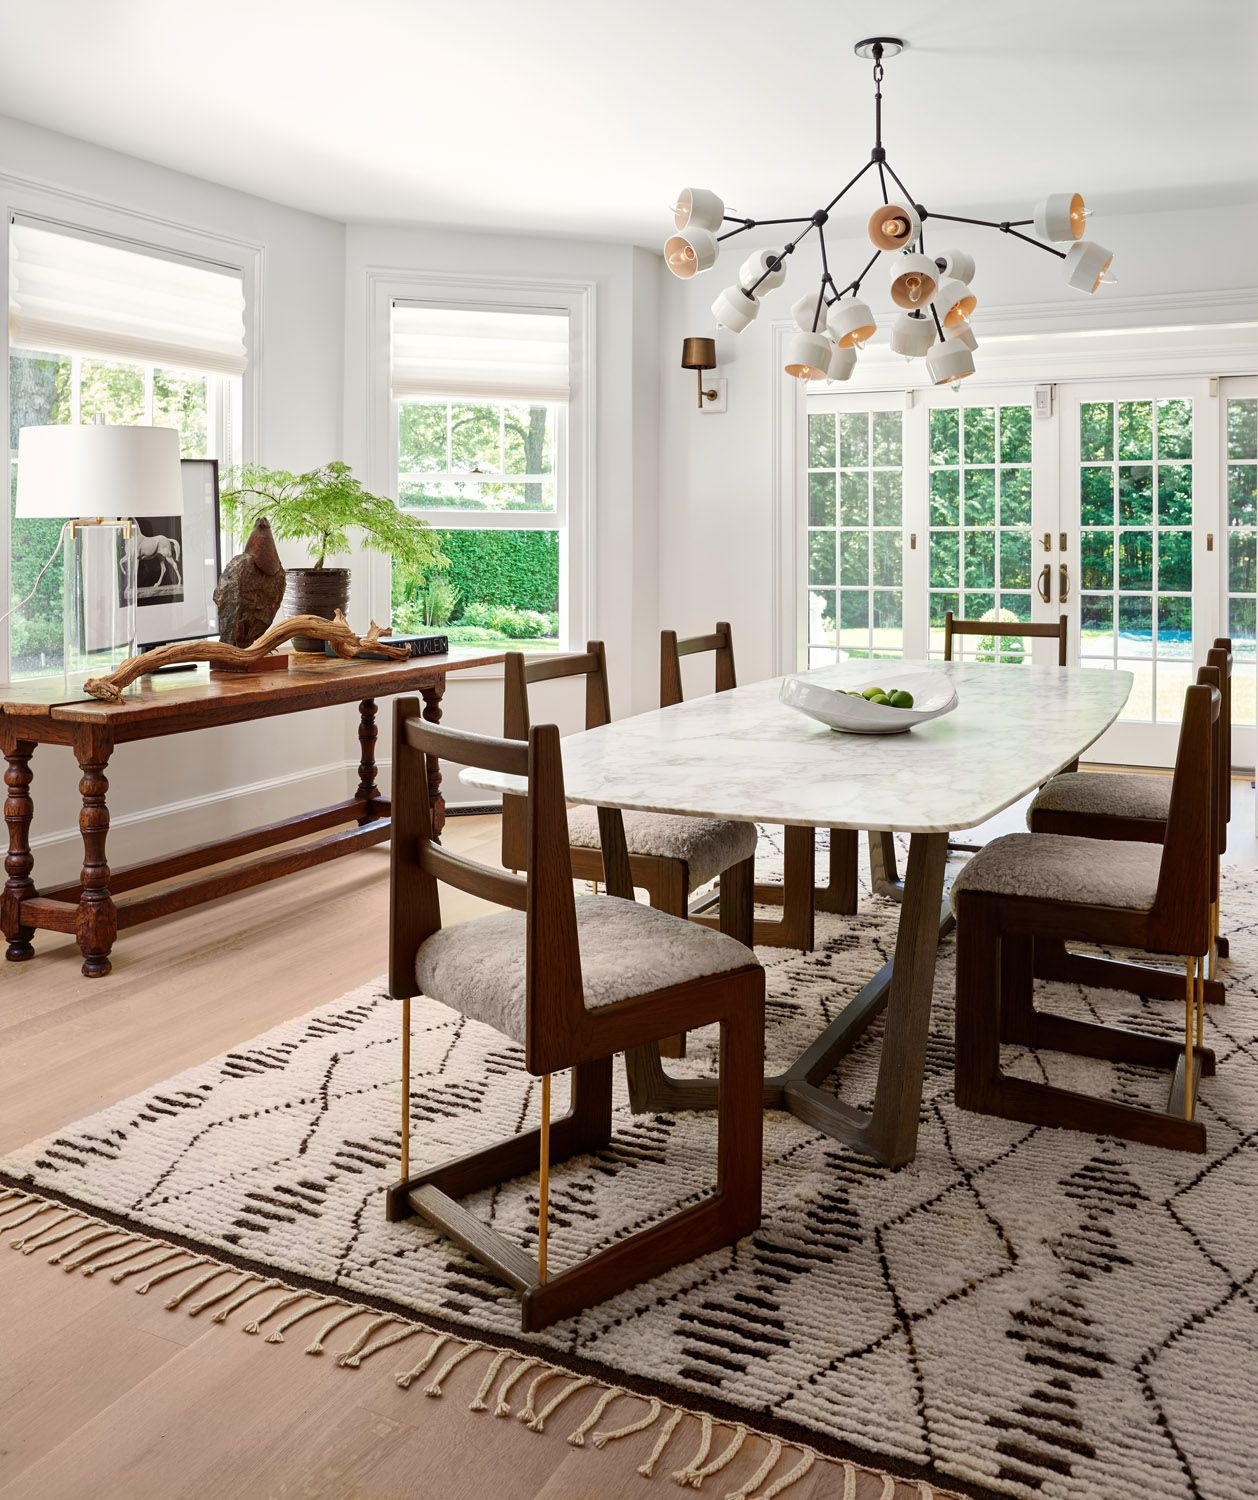 Homedesignideas Eu: Click Here To See Some Ideas On How To Decor Your Dining